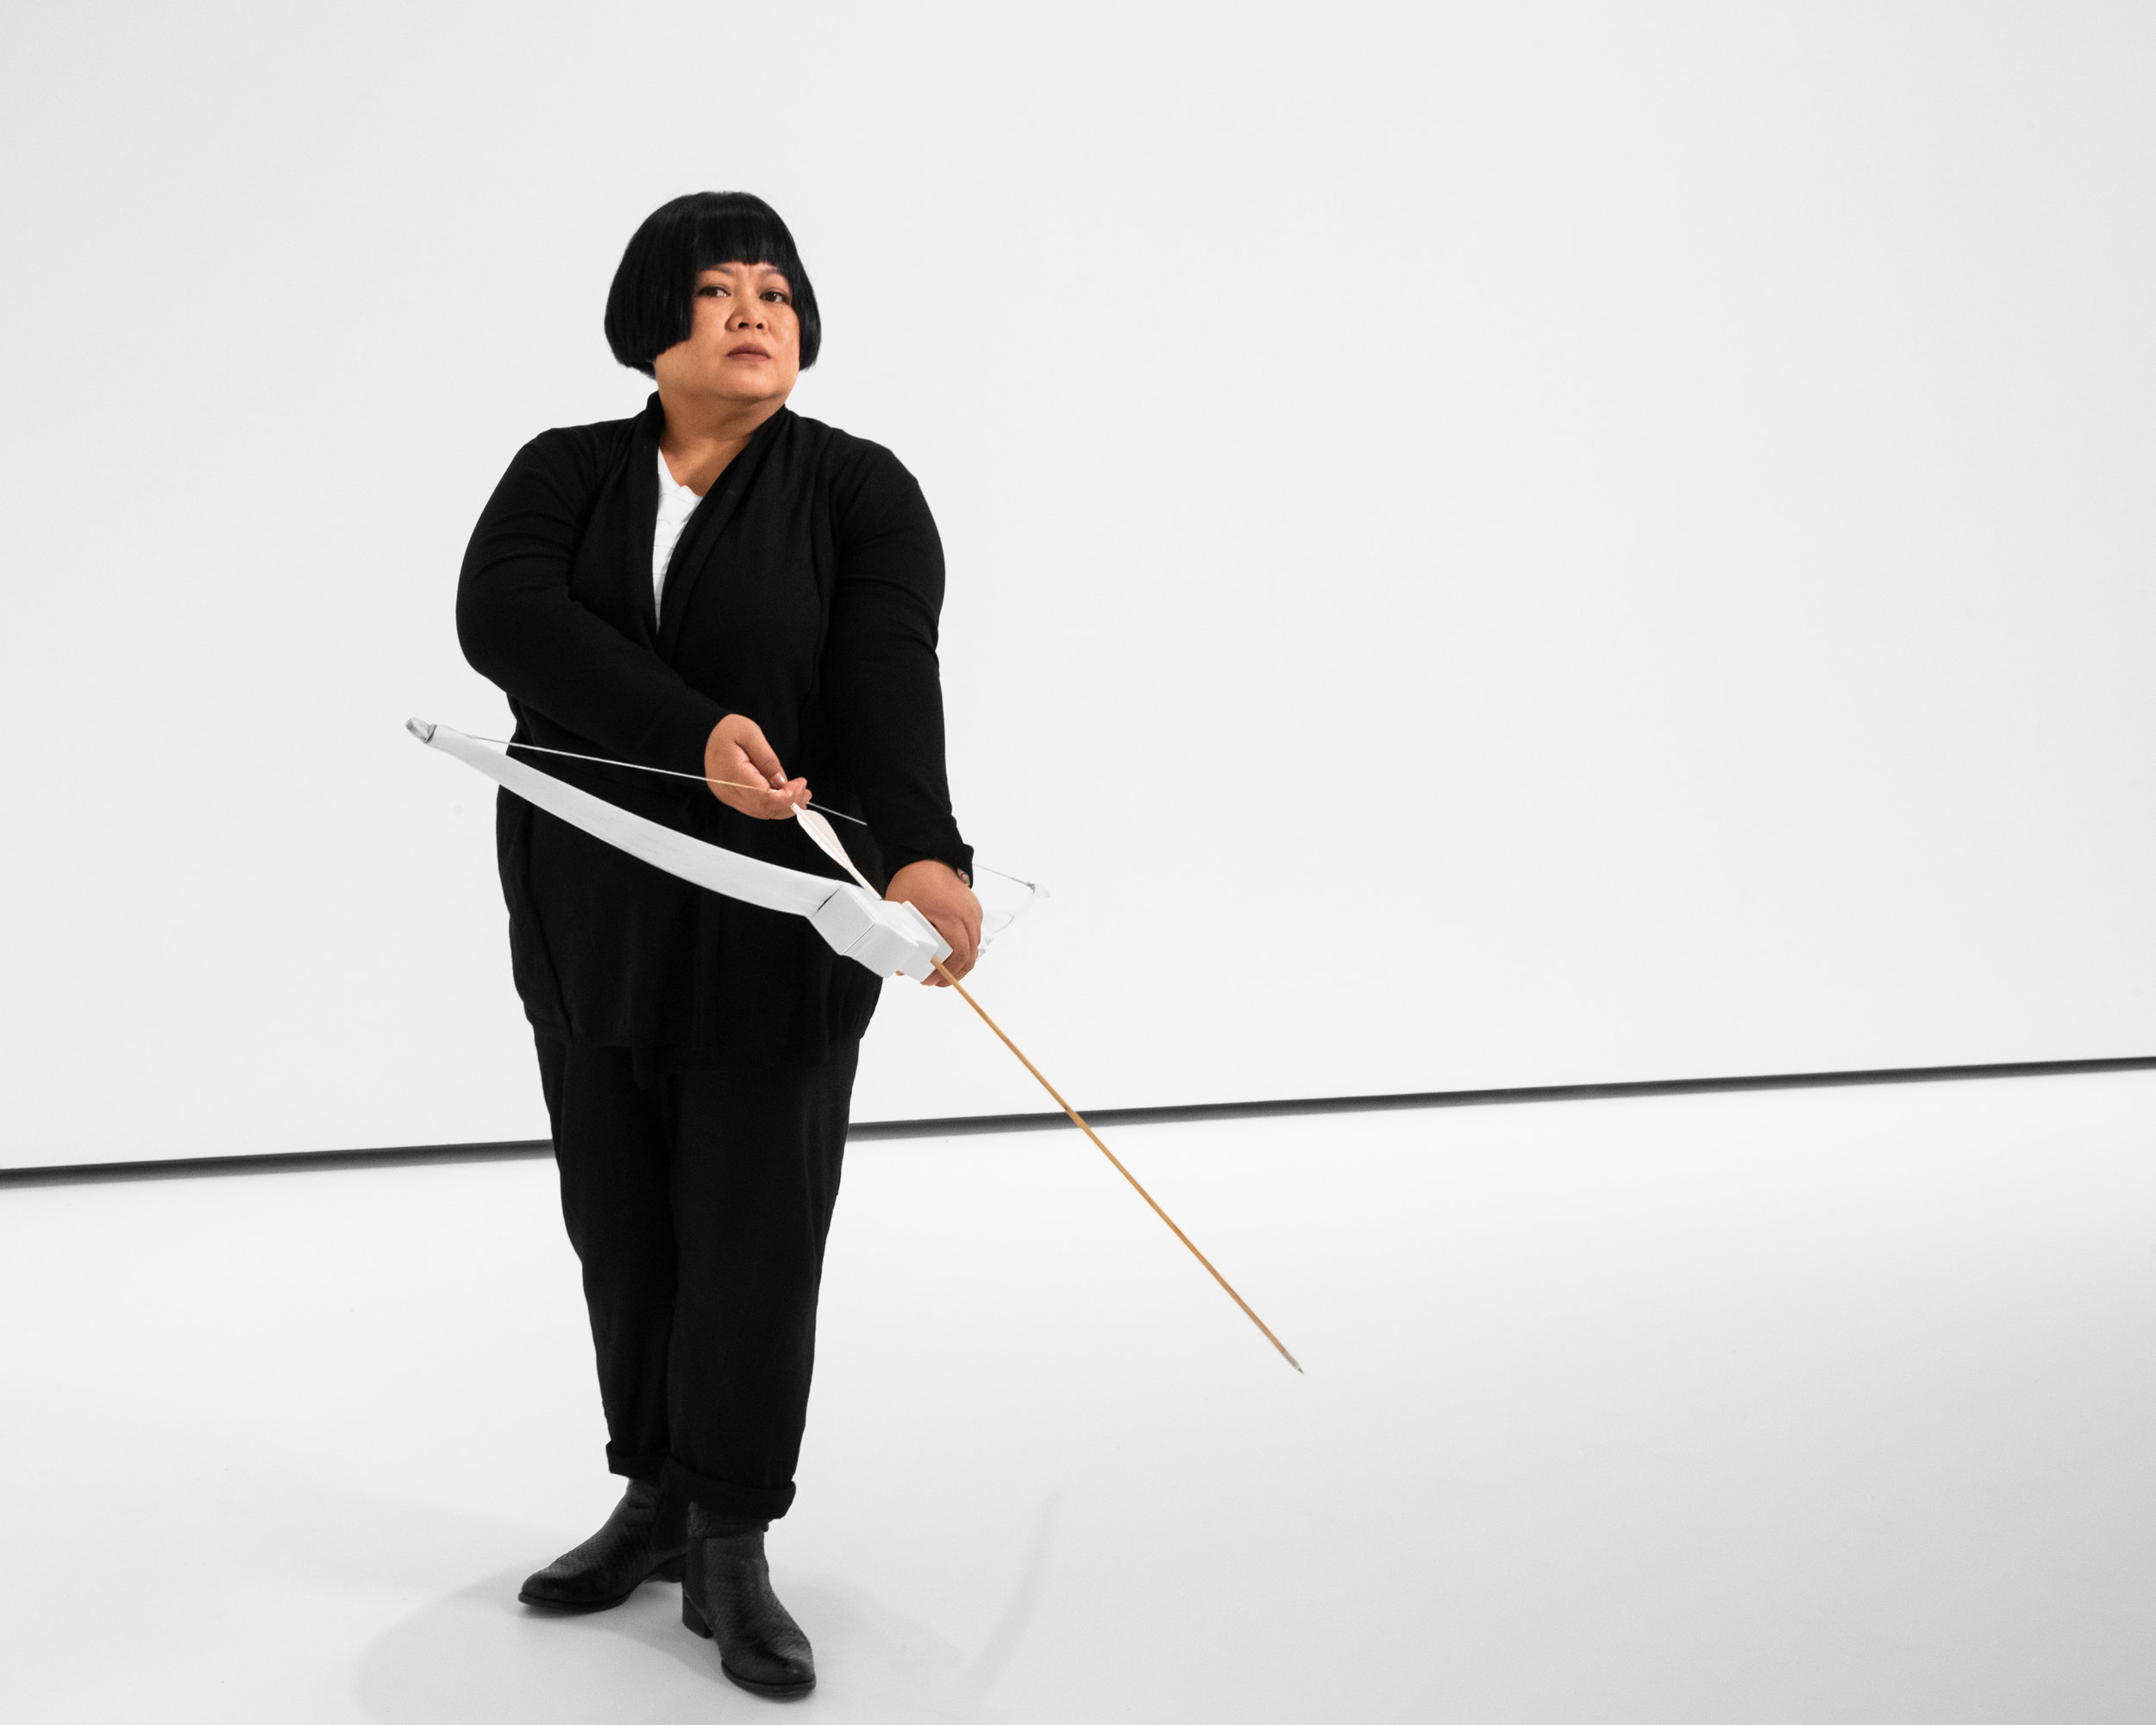 Melati Suryodarmo    Transaction of hollows  2016 durational performance including bow, 800 arrows and costume; single-channel video: 14:45 minutes, colour, sound  Purchased 2019 National Gallery of Australia © Melati Suryodarmo